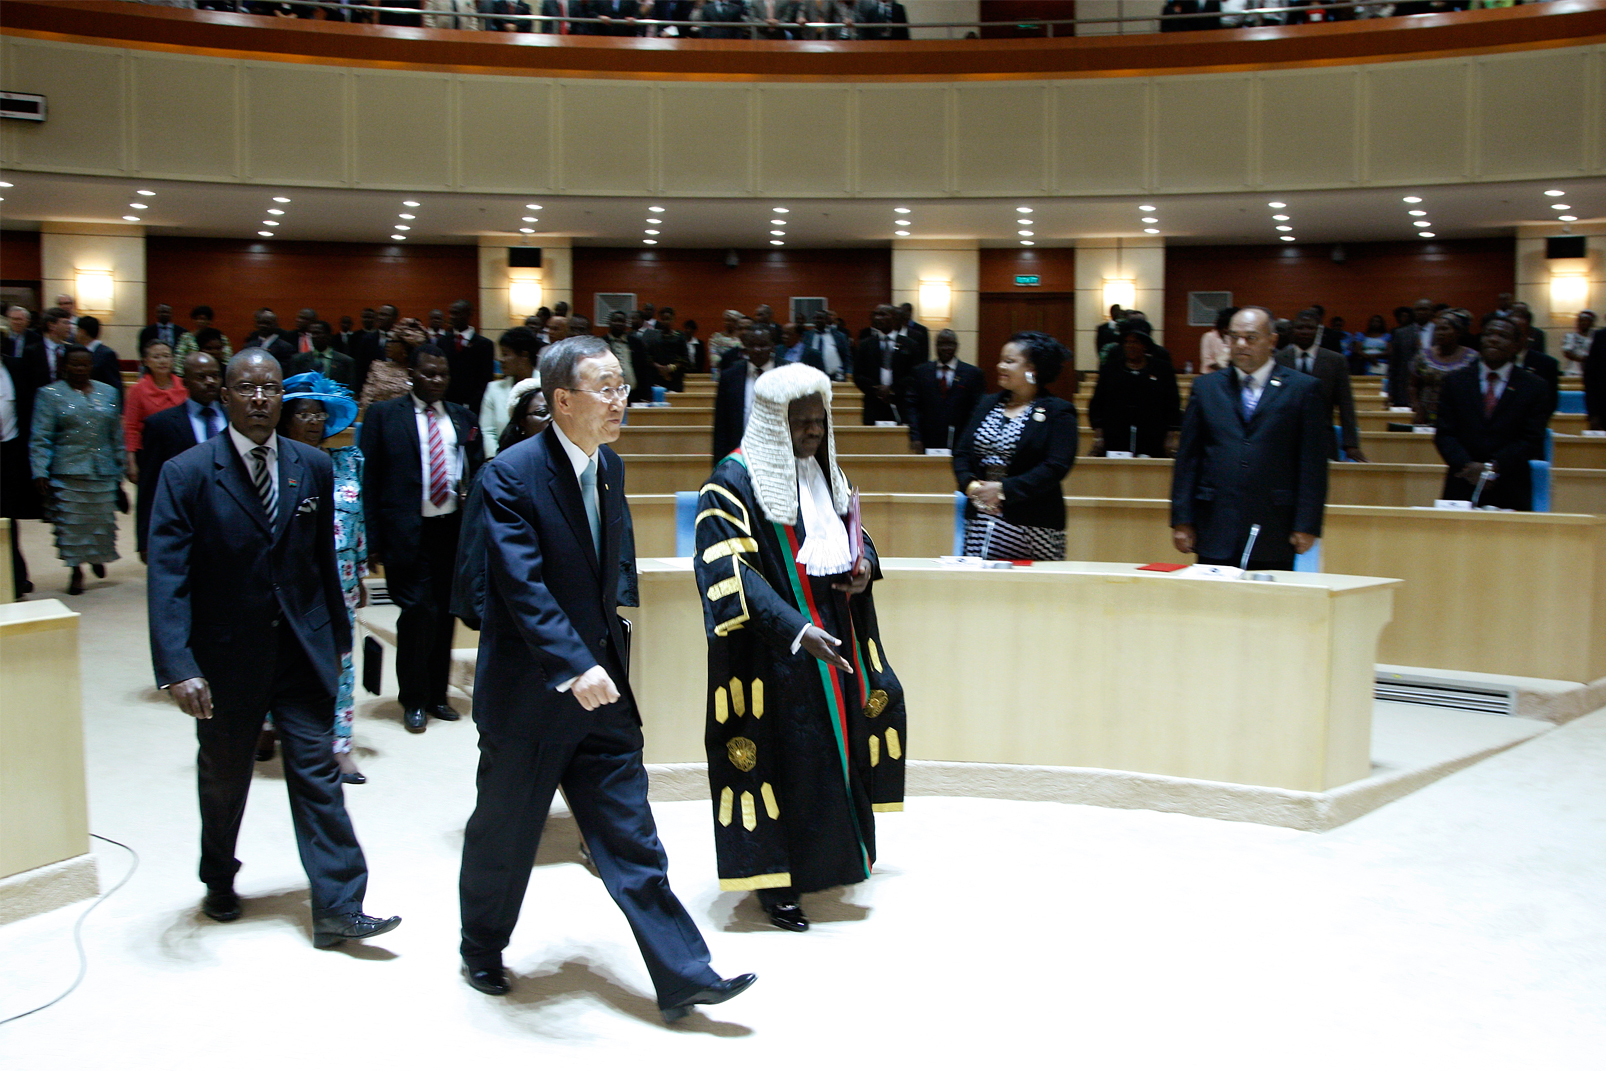 Secretary-General Ban Ki-moon (centre) is guided through Malawi's new parliament building by Malawian Speaker of Parliament Henry Chimunthu Banda (right).